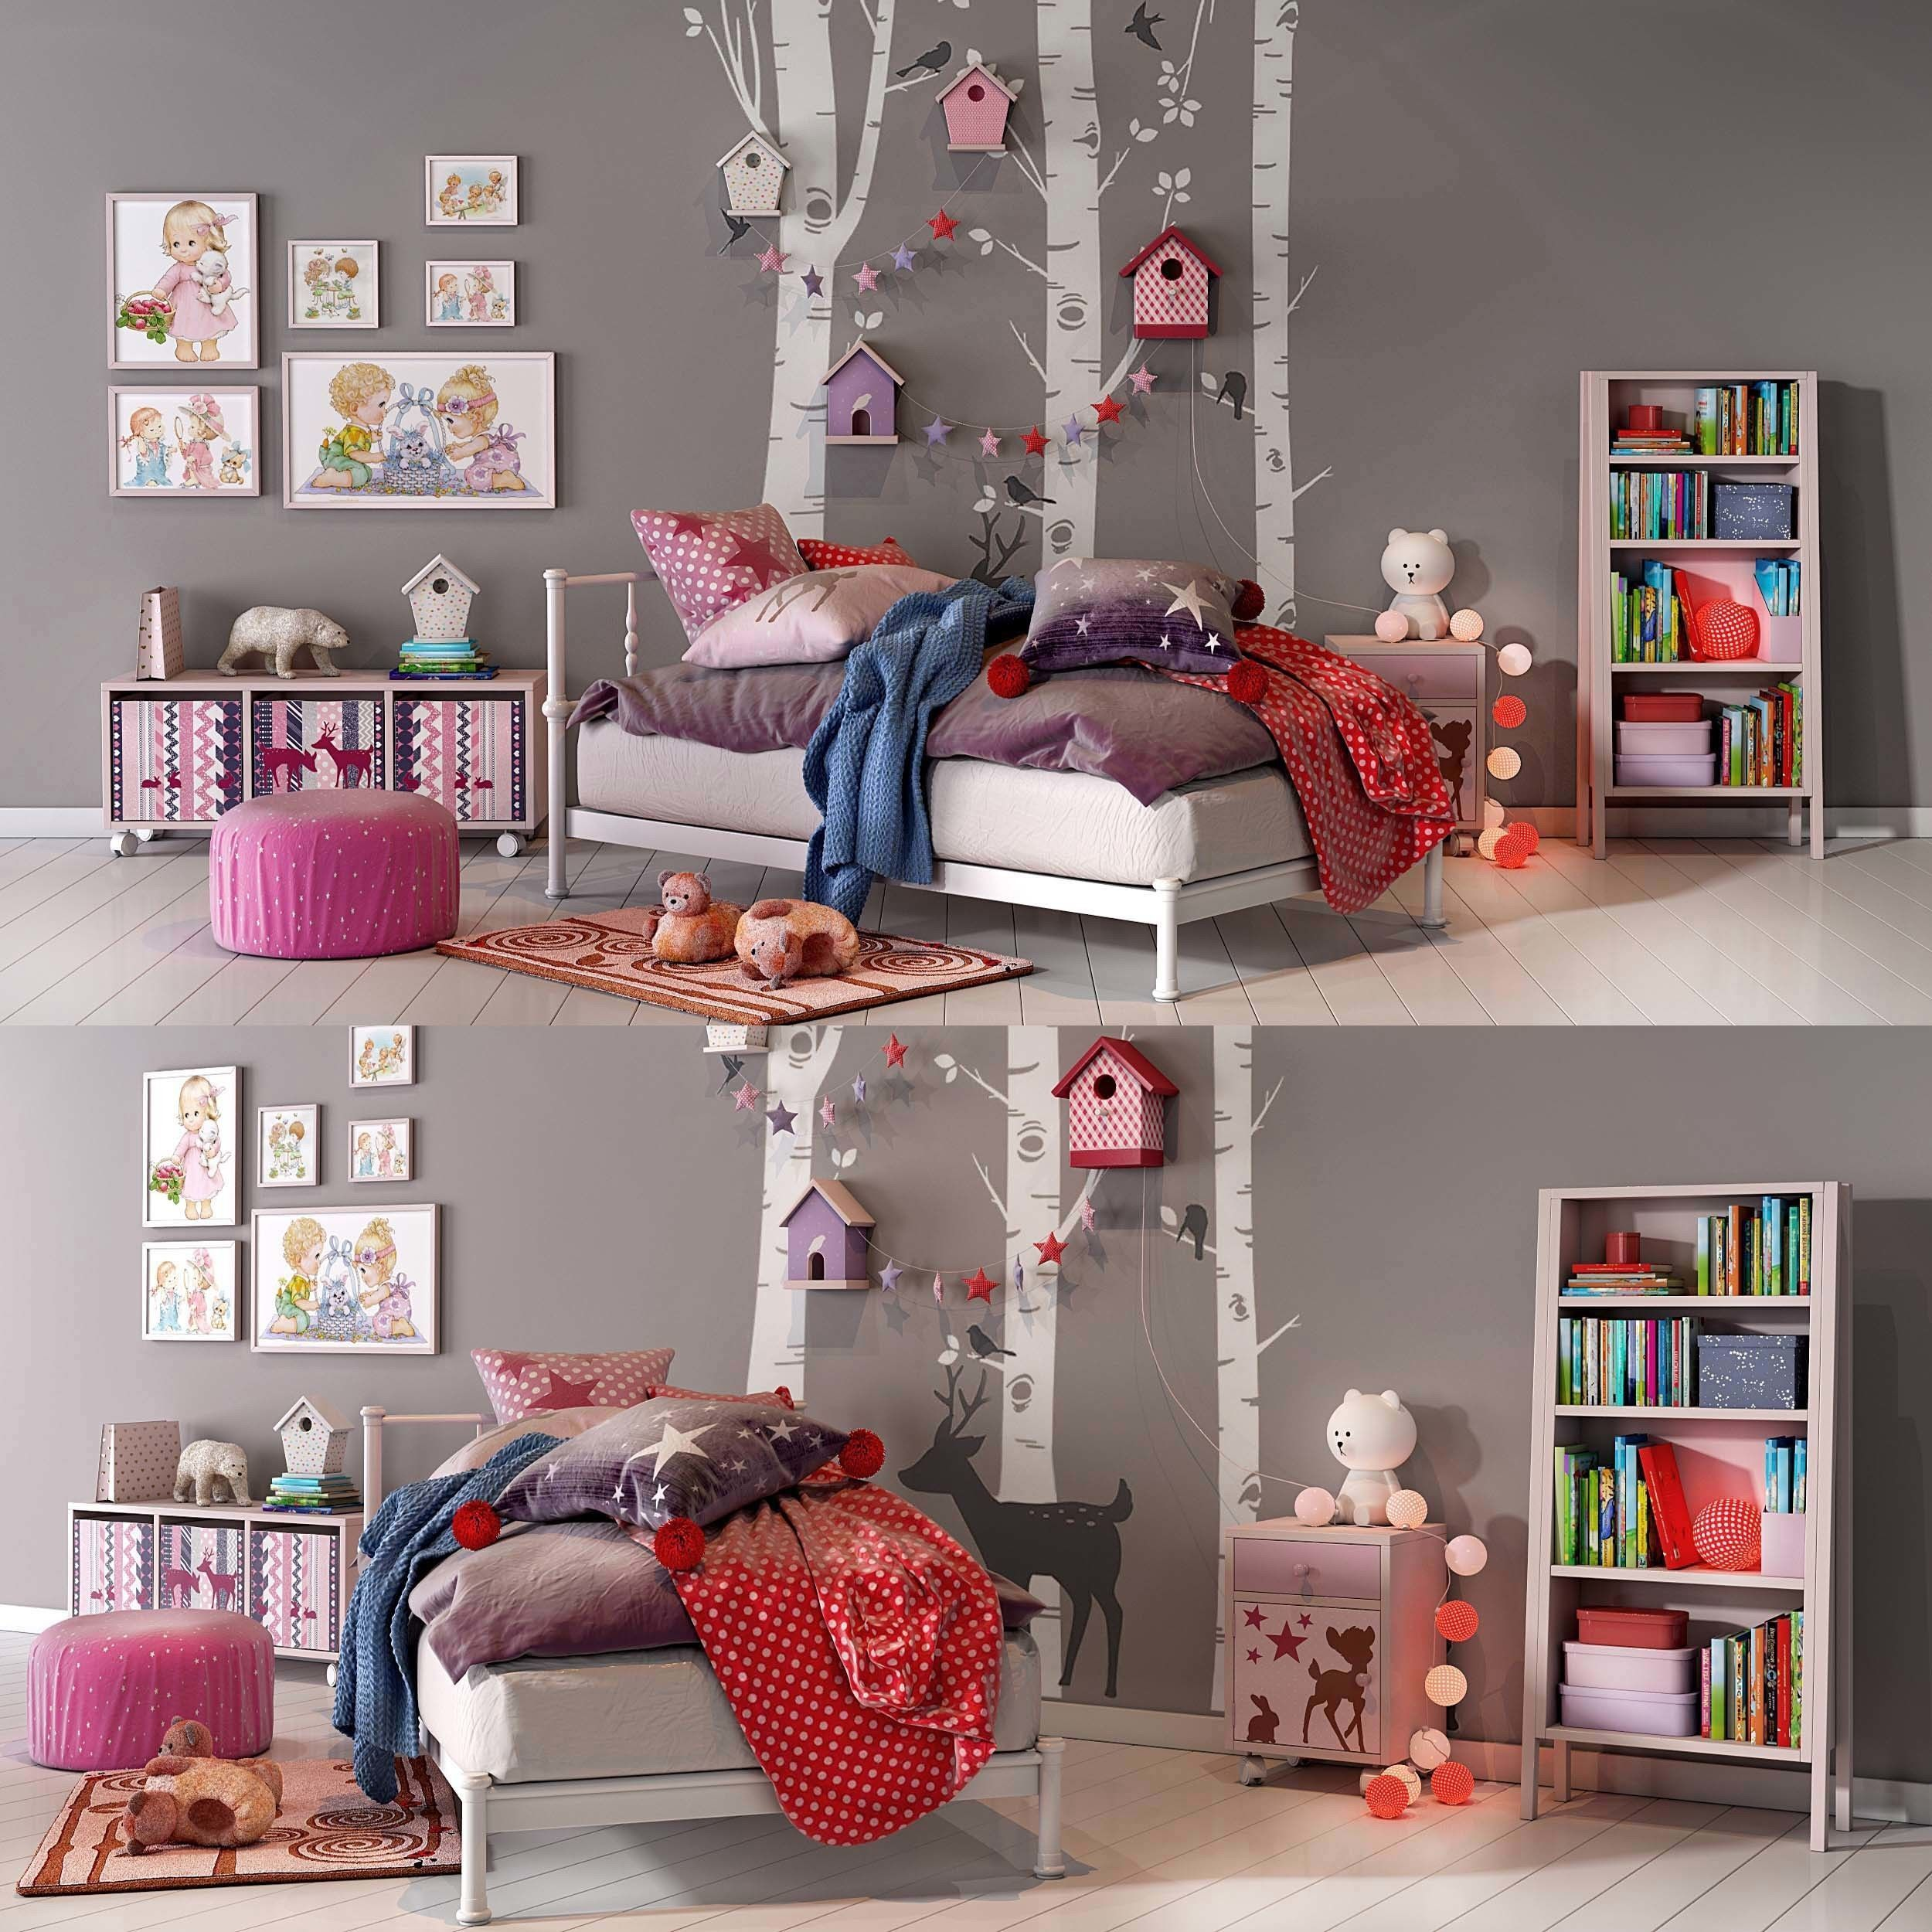 Girl bedroom set 02